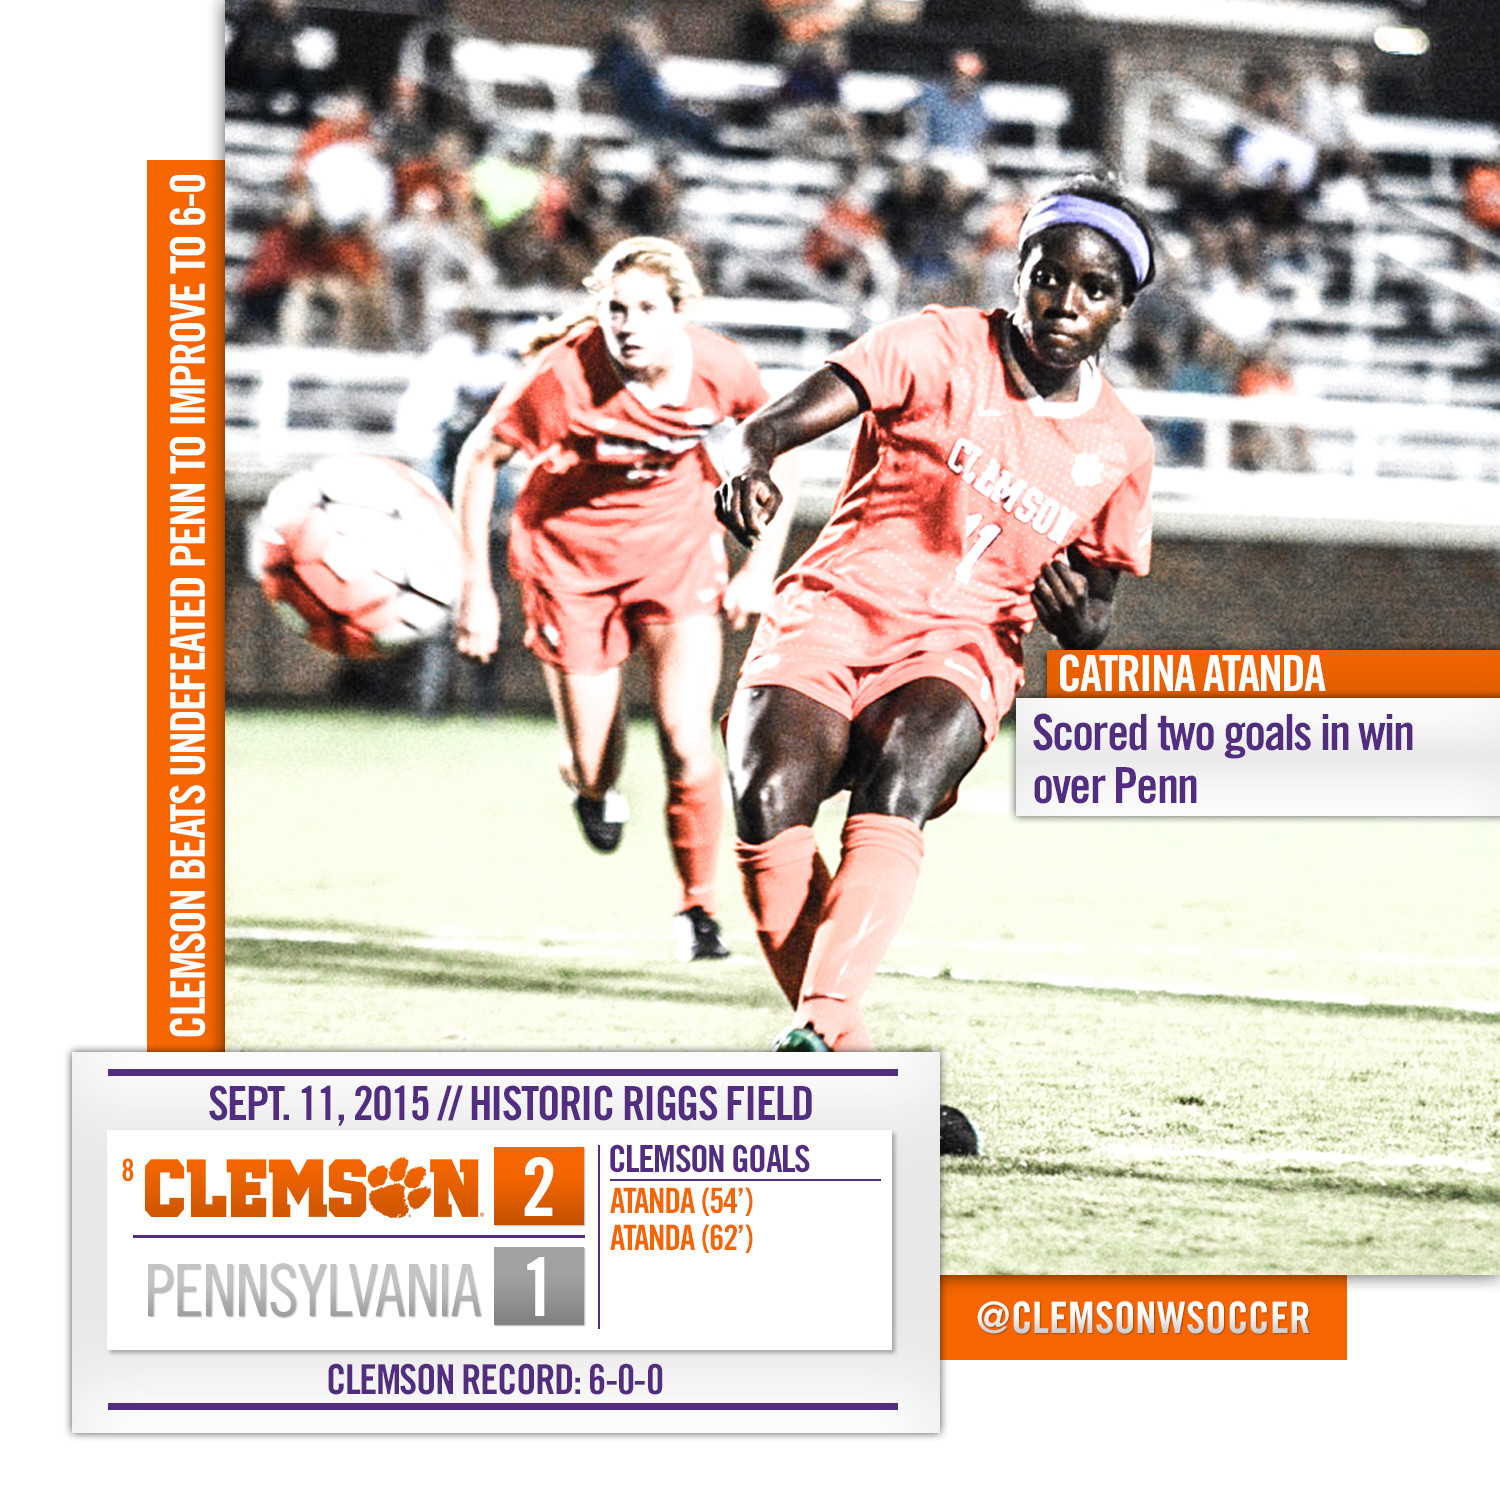 Tigers Win Again, Over Penn